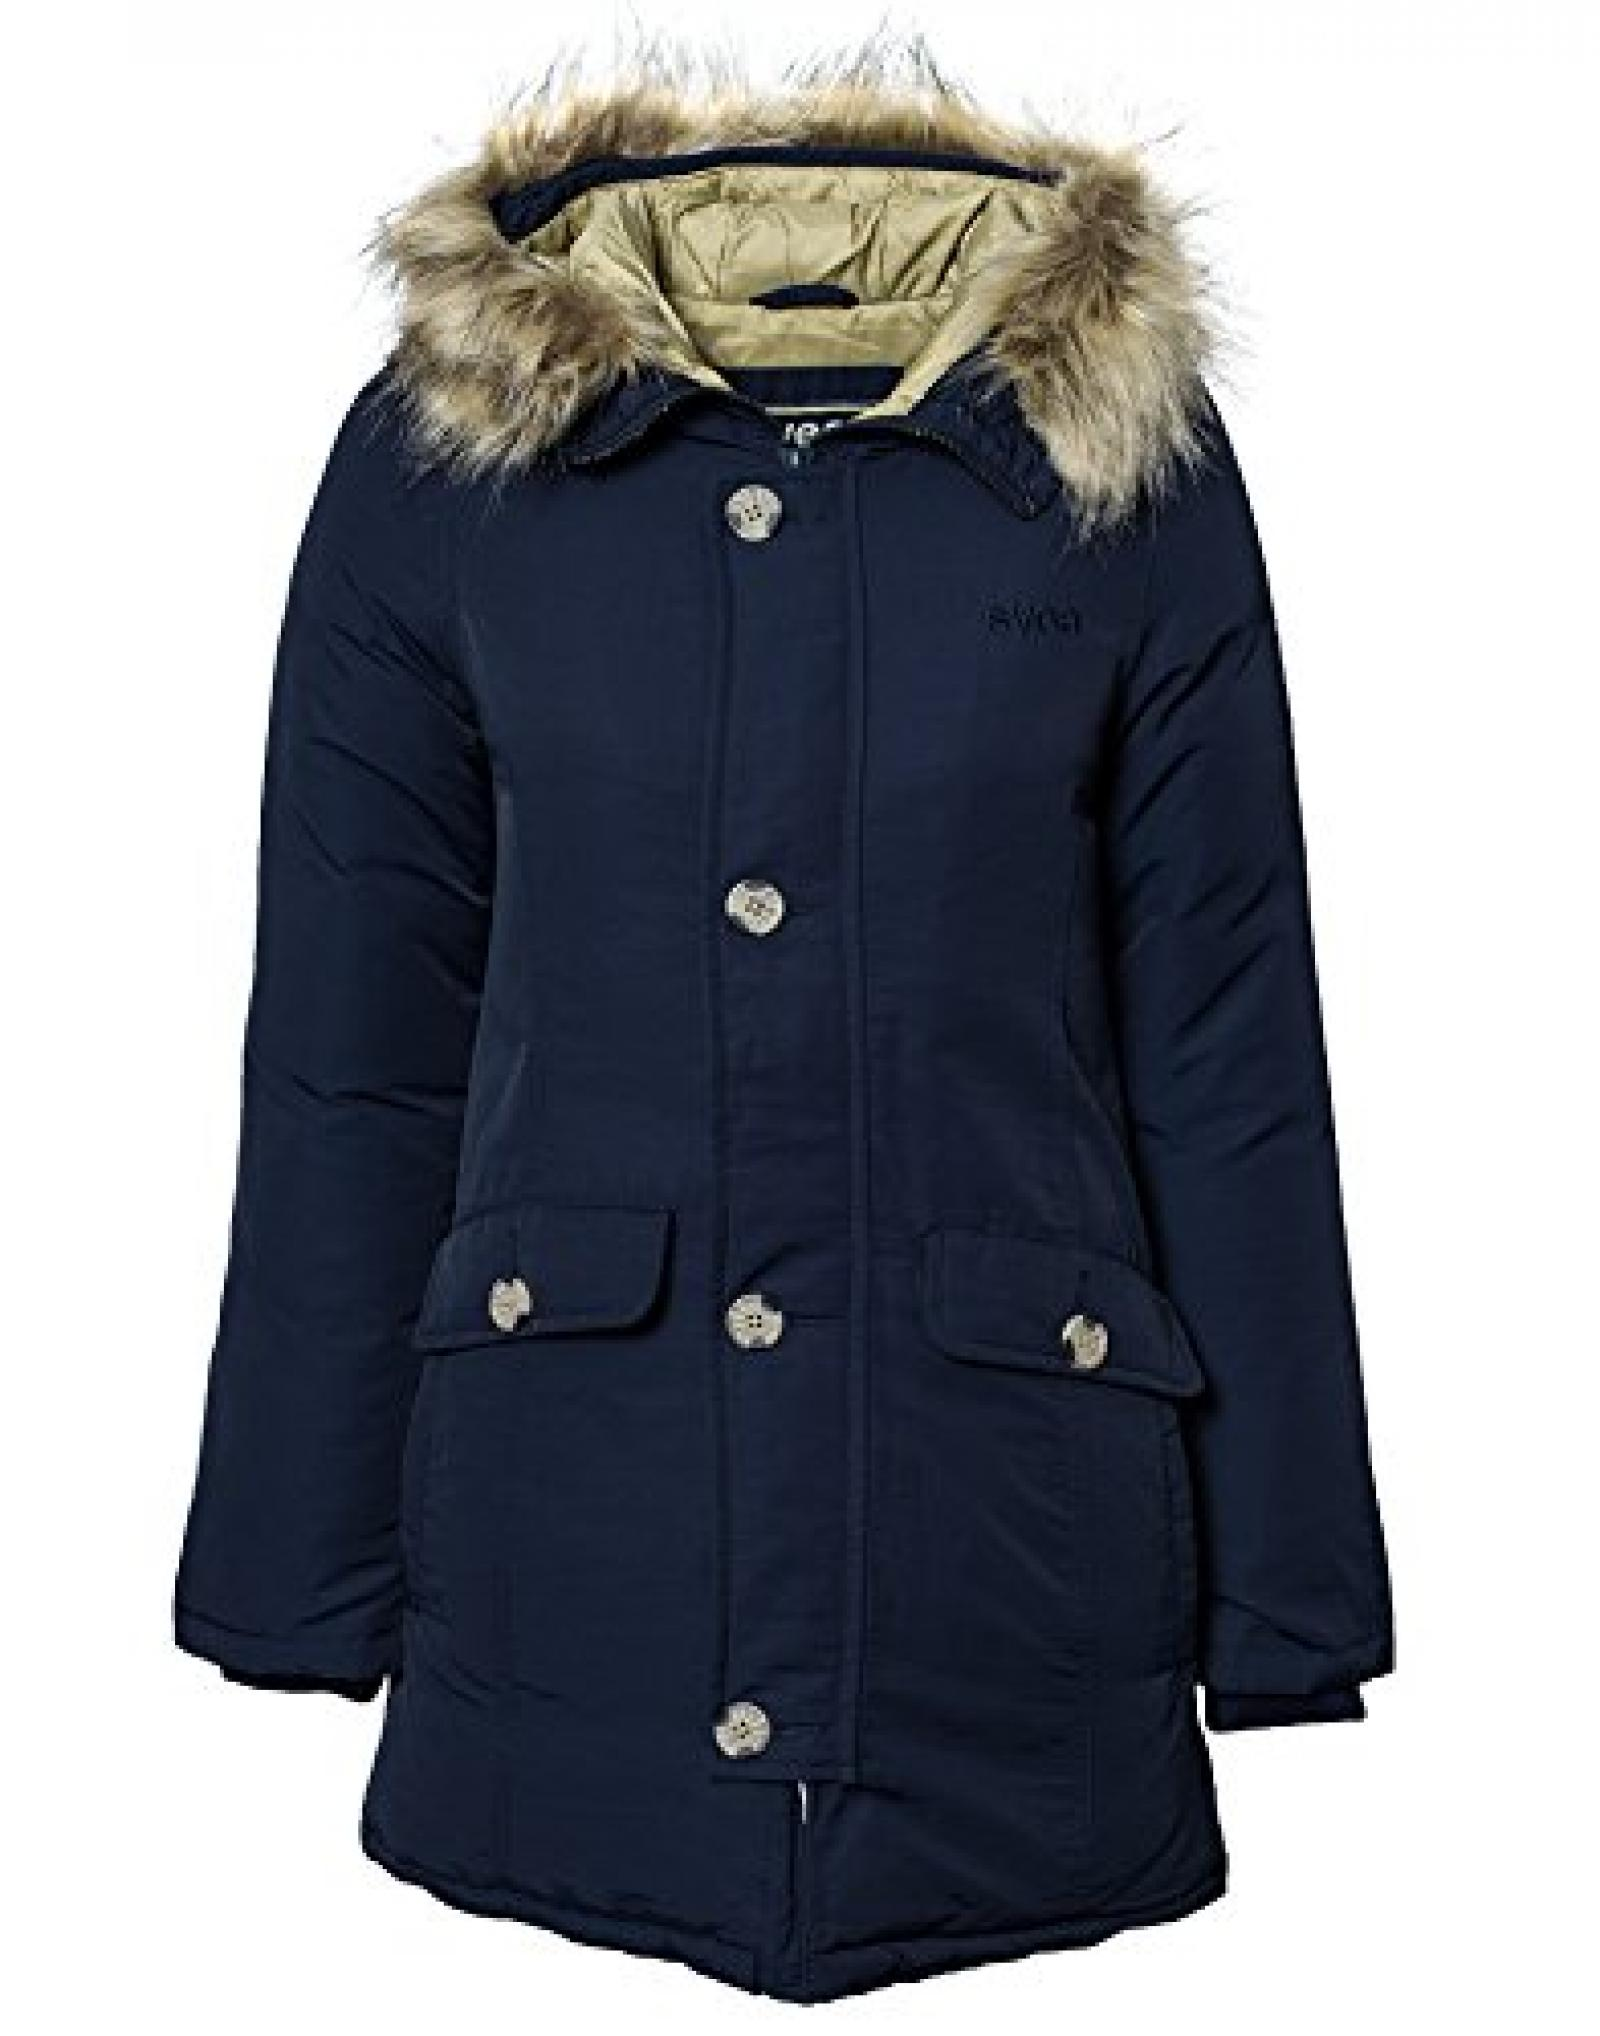 Svea Damen Miss Smith Weste / Jacke